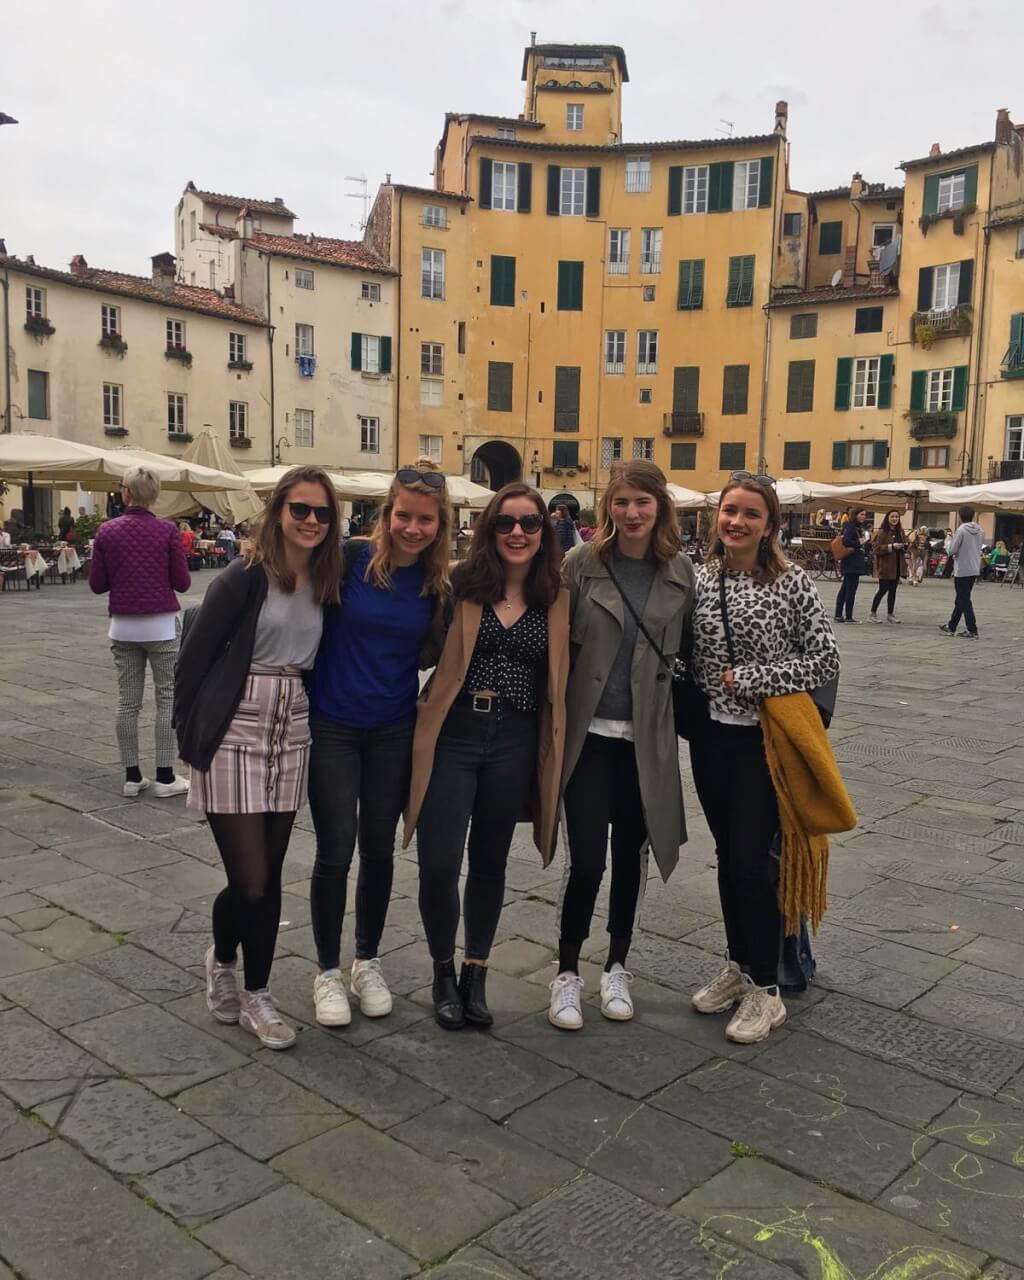 Road tripping through Tuscany: Twiharding in Volterra, thrifting in Arezzo, and more…